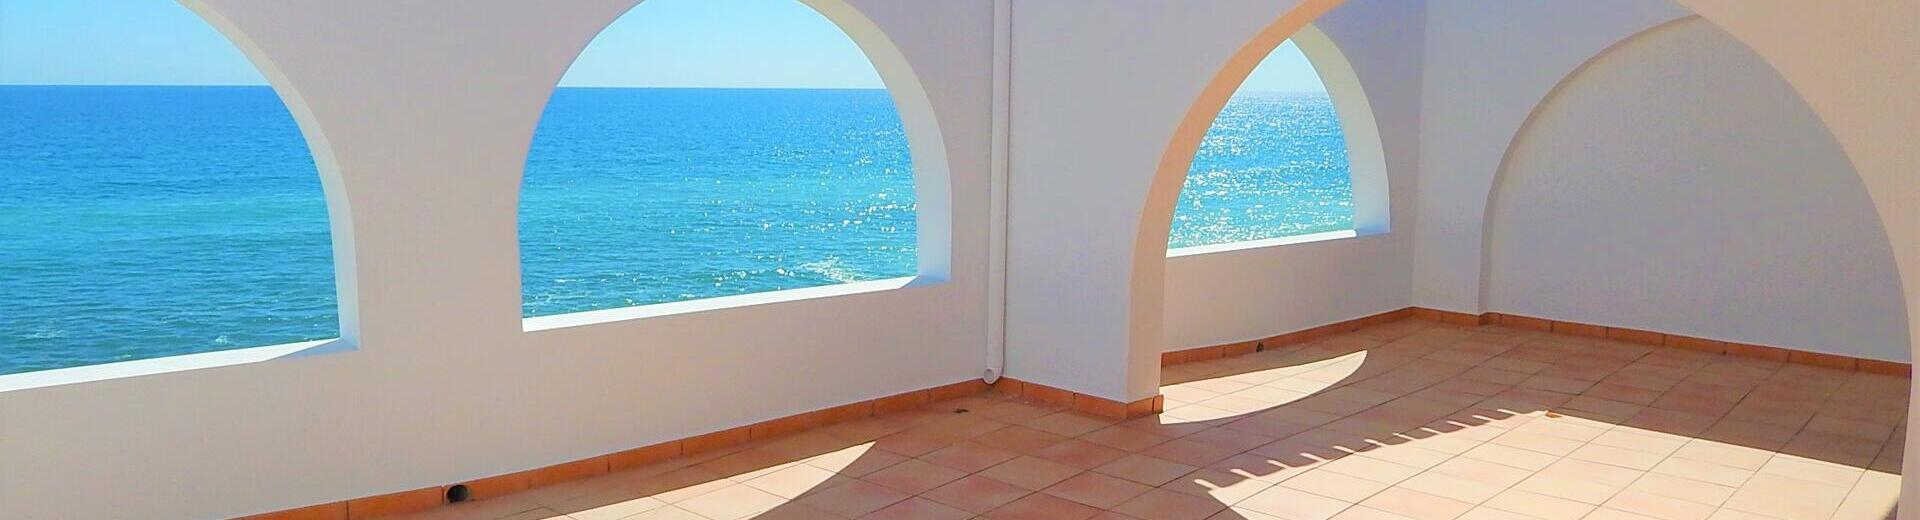 VIP7859: Apartment for Sale